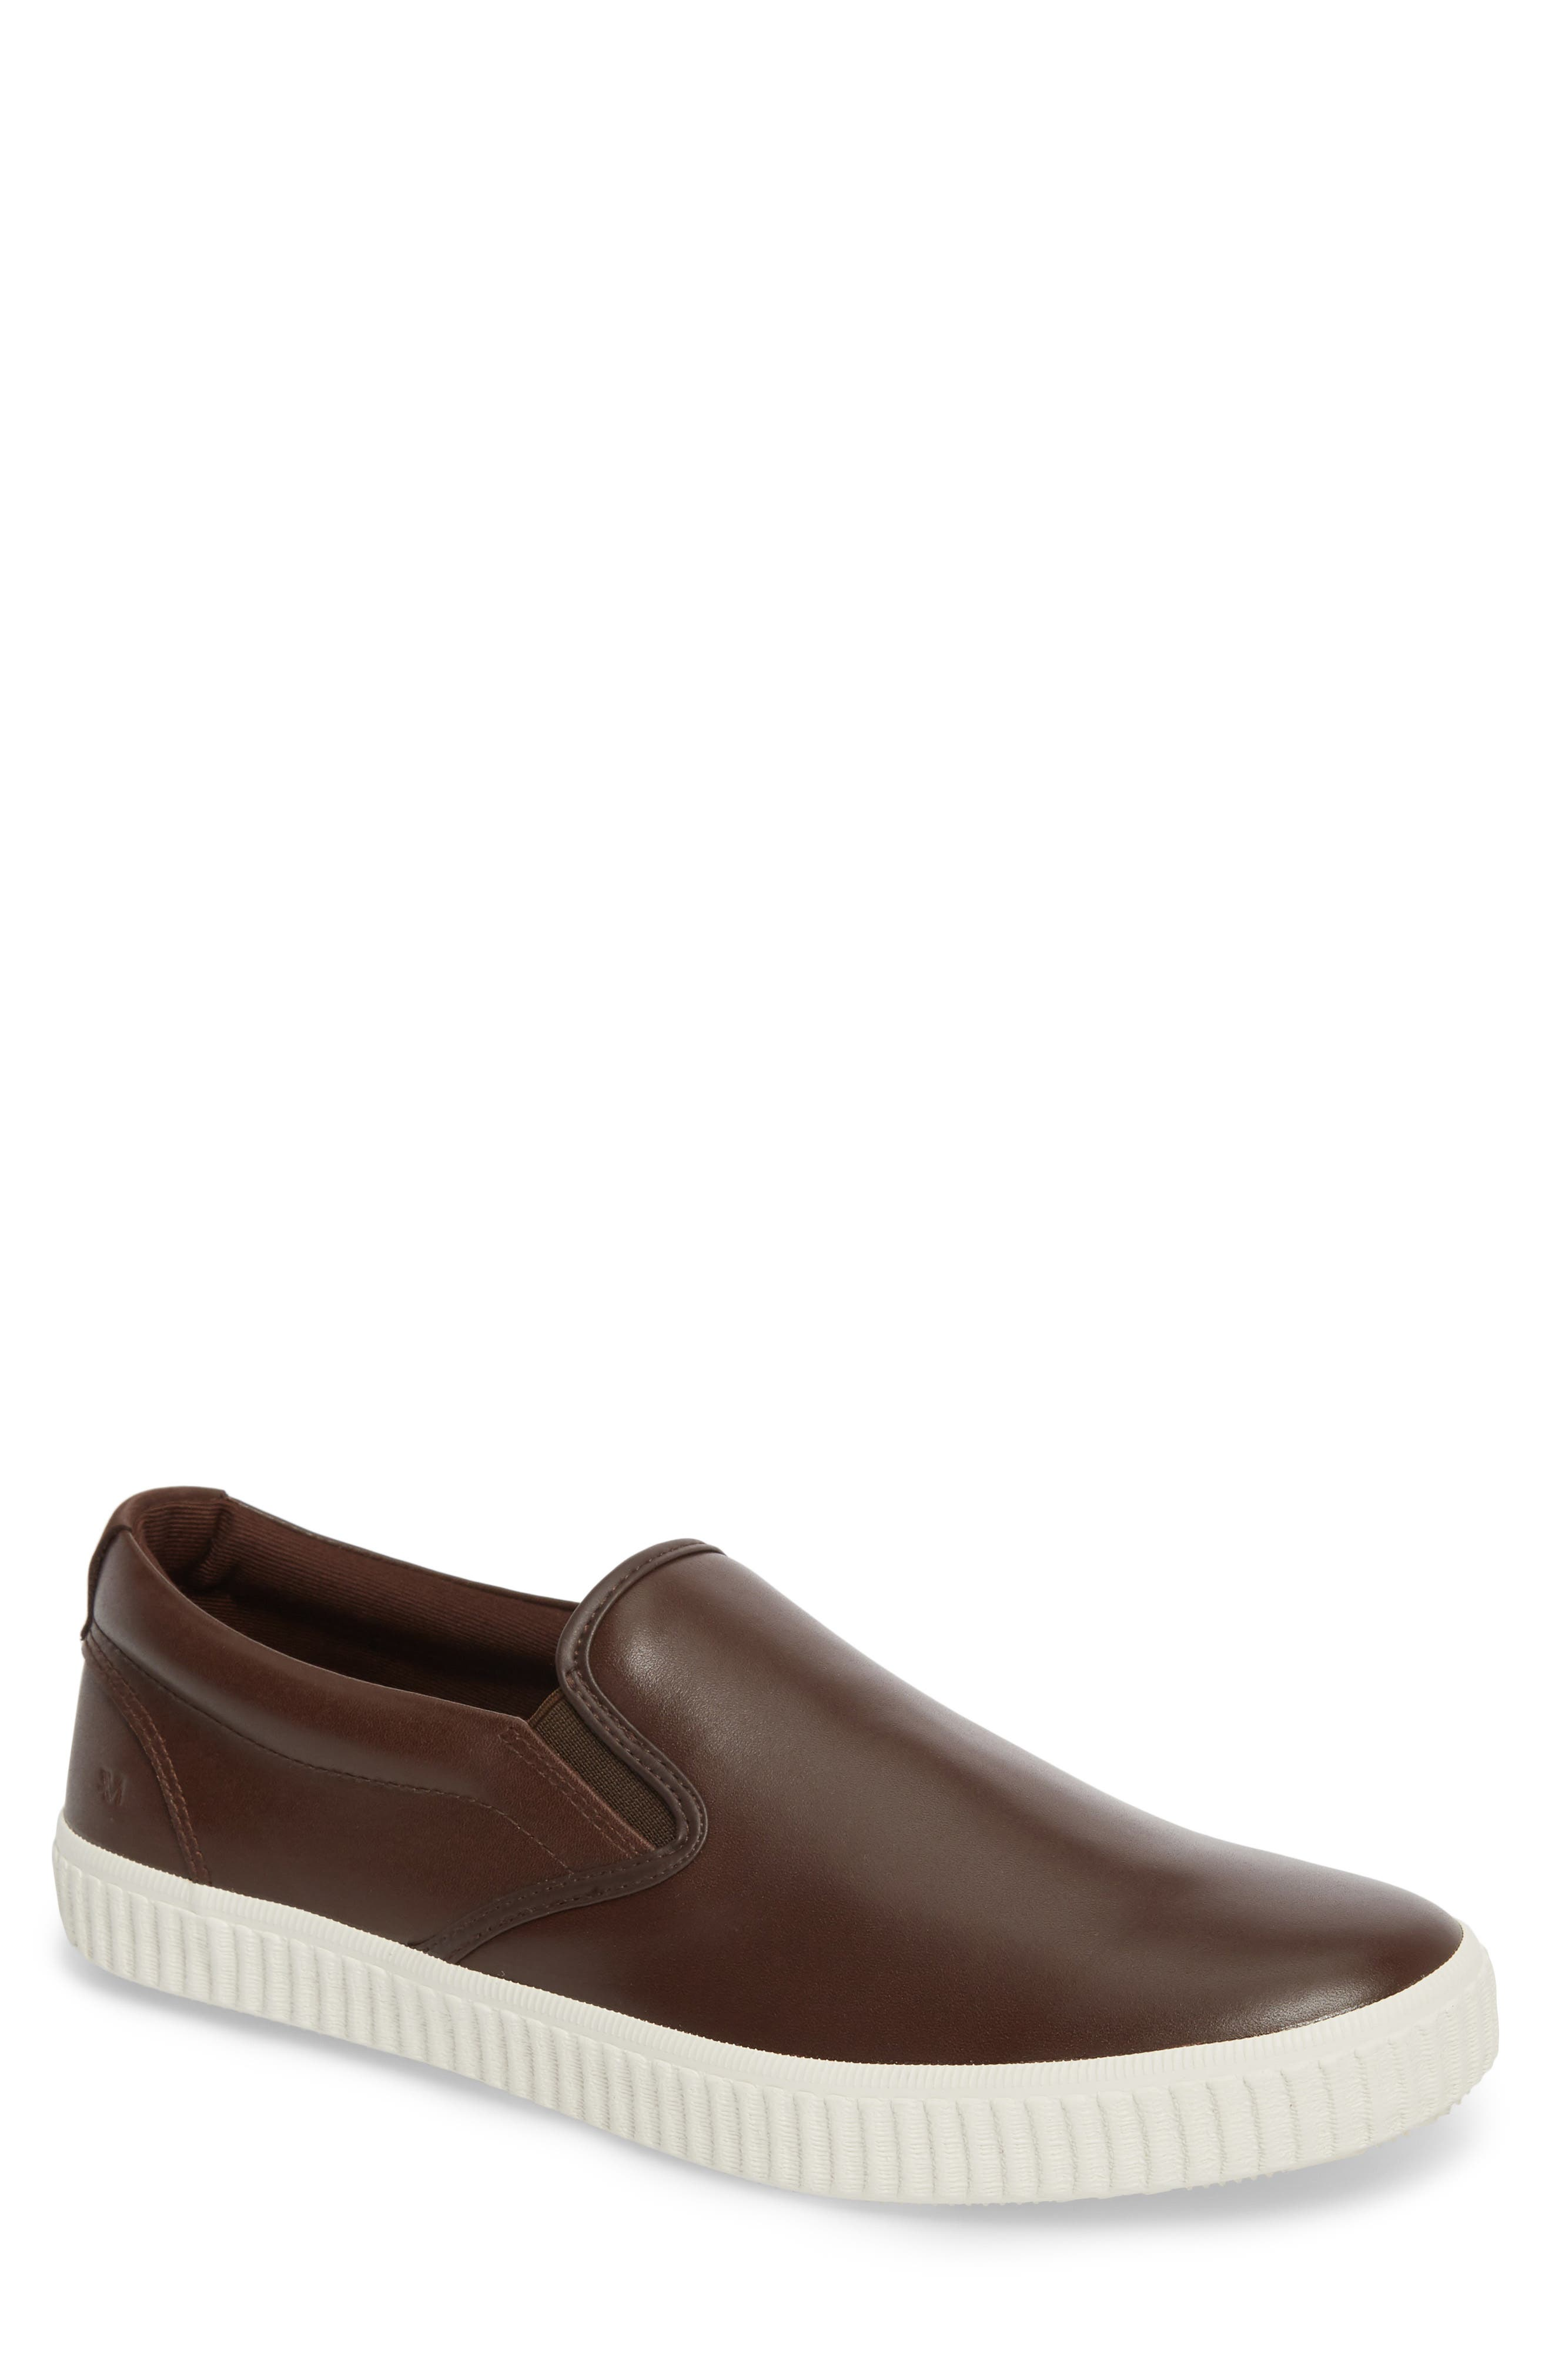 Riverside Slip-On Sneaker,                         Main,                         color, Brown/ Off White Leather